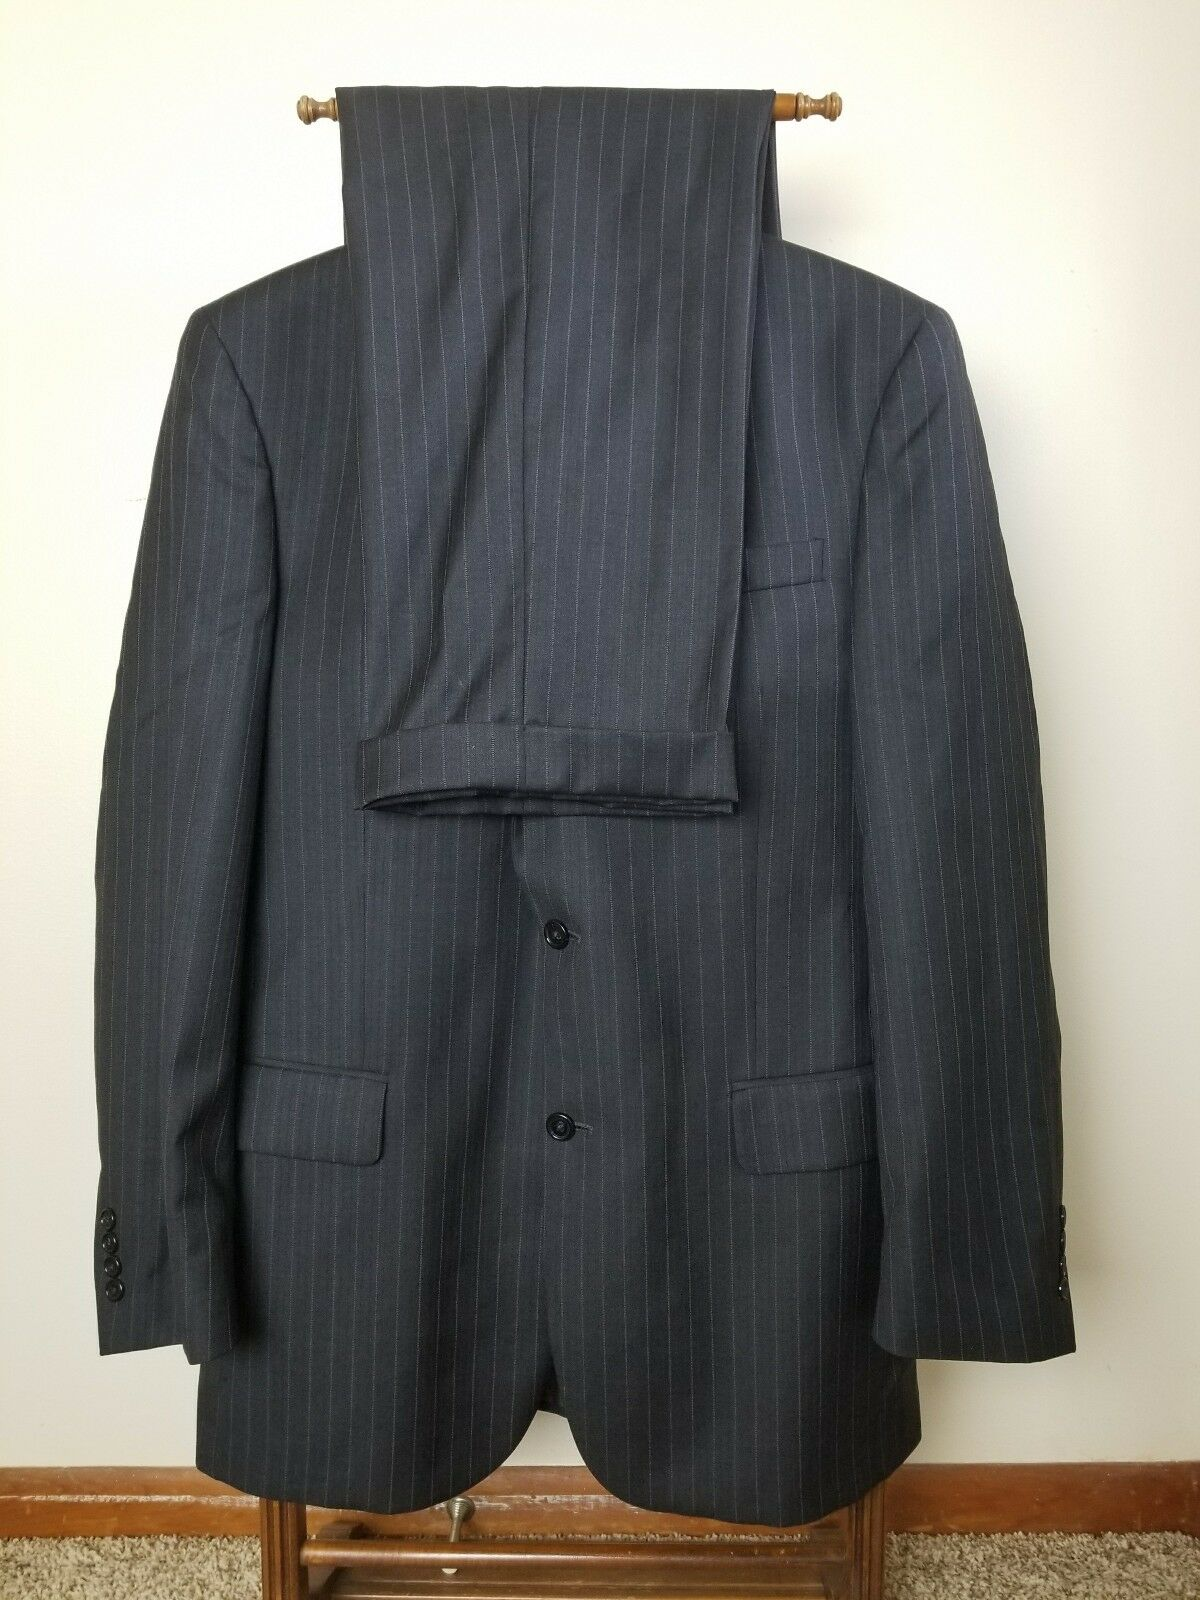 JOS .A BANK SIGNATURE COLLECTION Herren SIZE 40L grau STRIPES SUIT PANTS W32X32.5